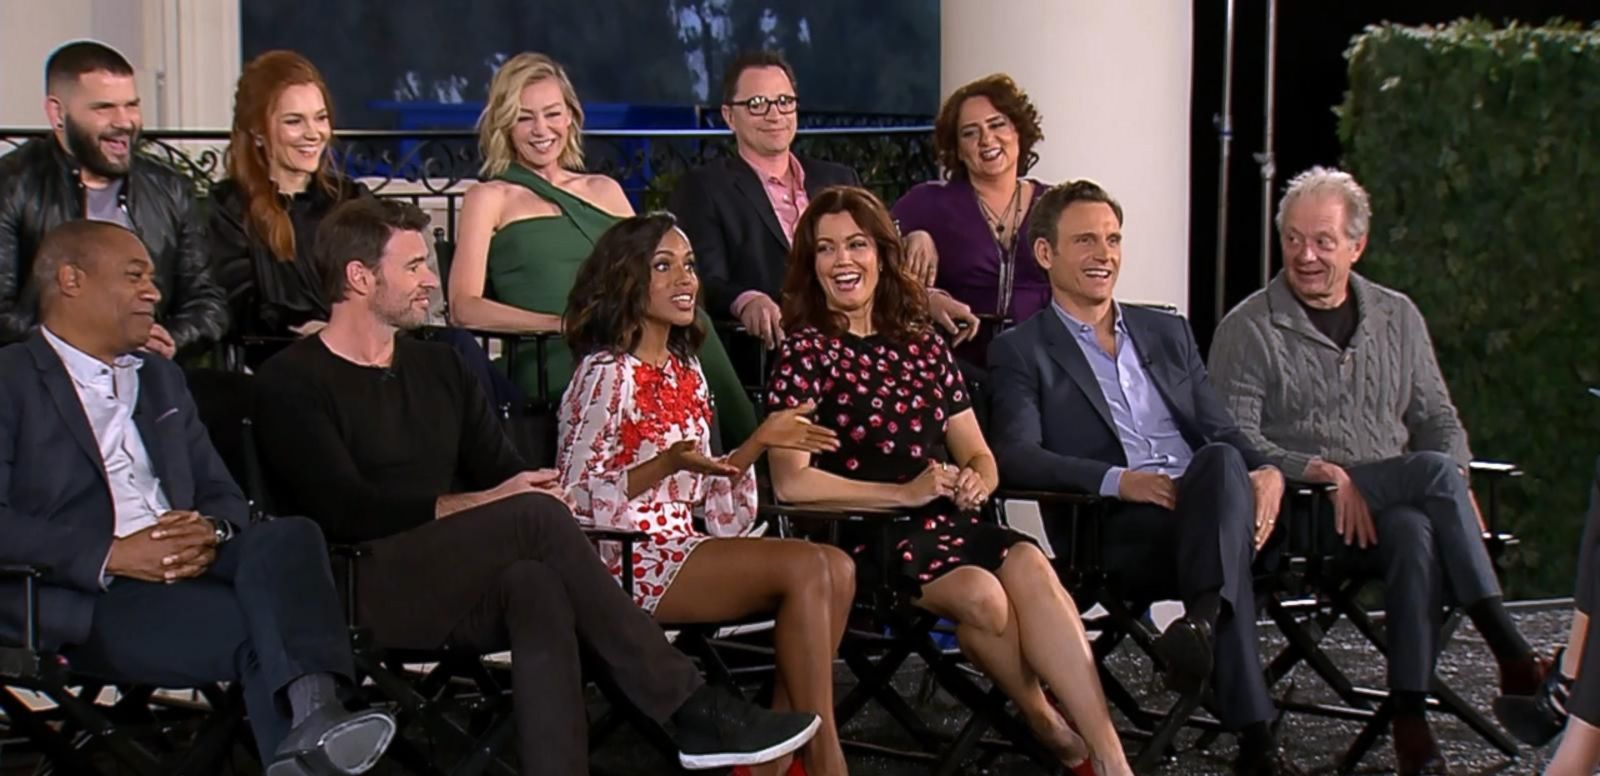 VIDEO: 'GMA' Catches Up With the Cast of 'Scandal' Live